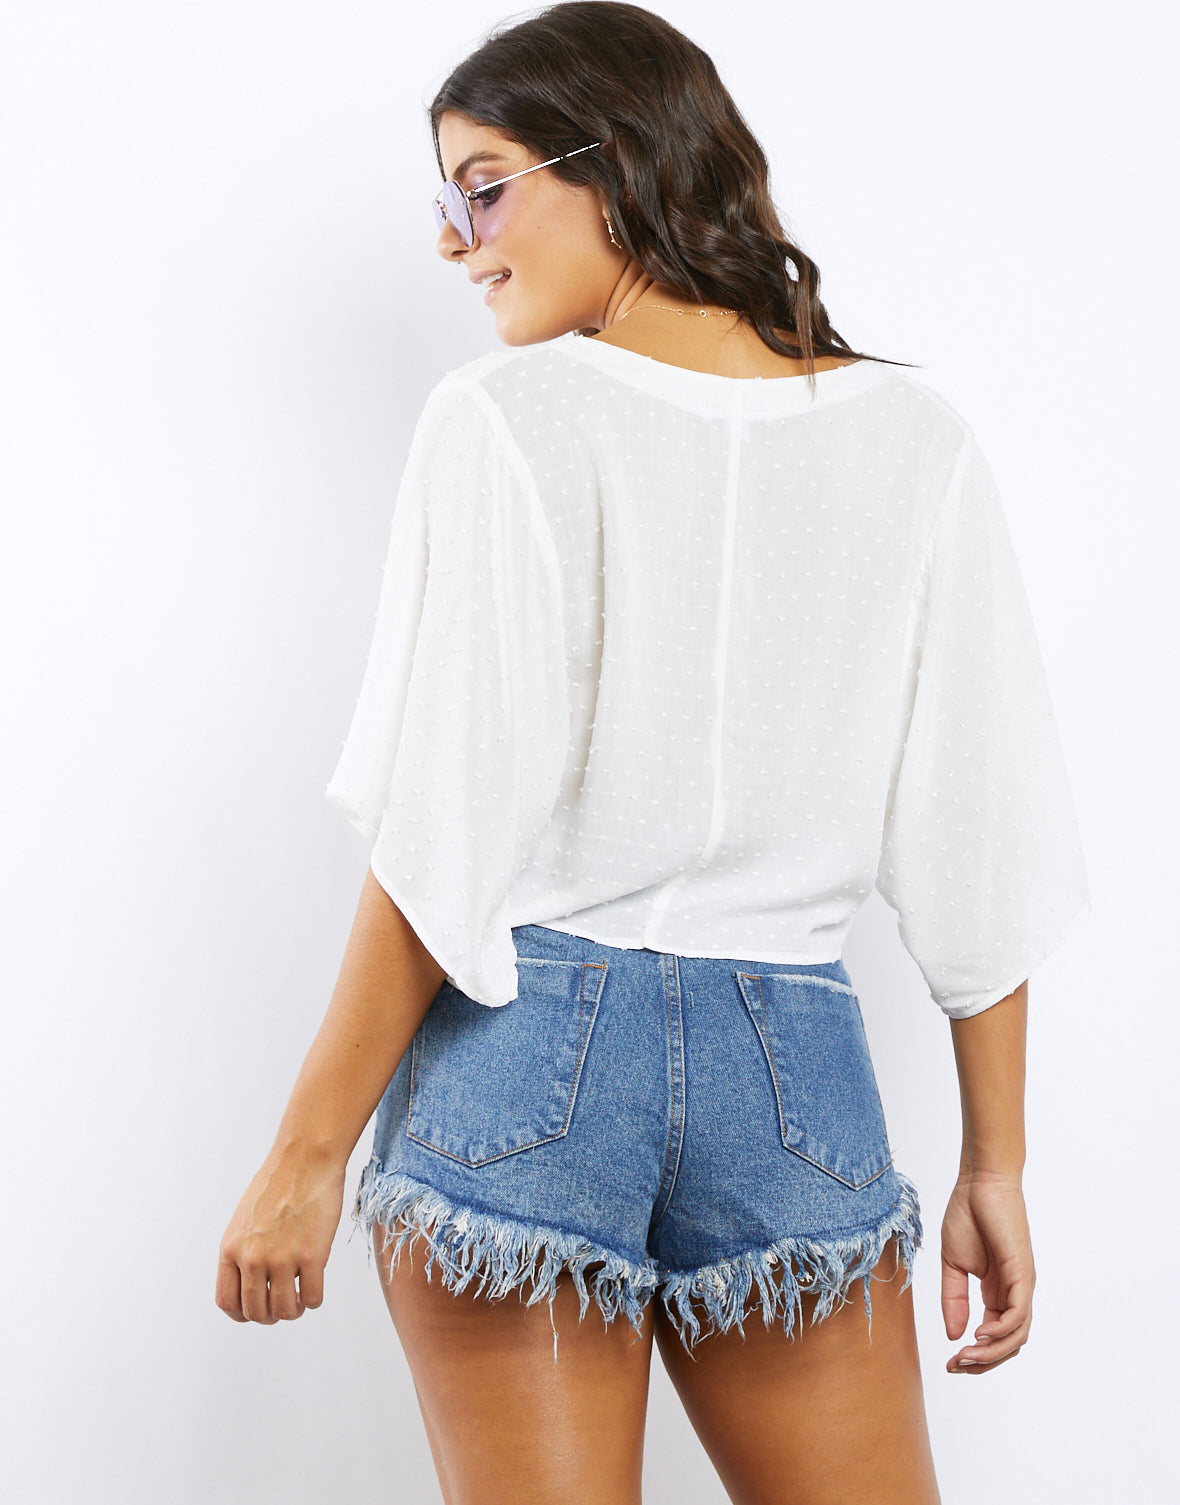 Wrapped It Up Surplice Crop Top